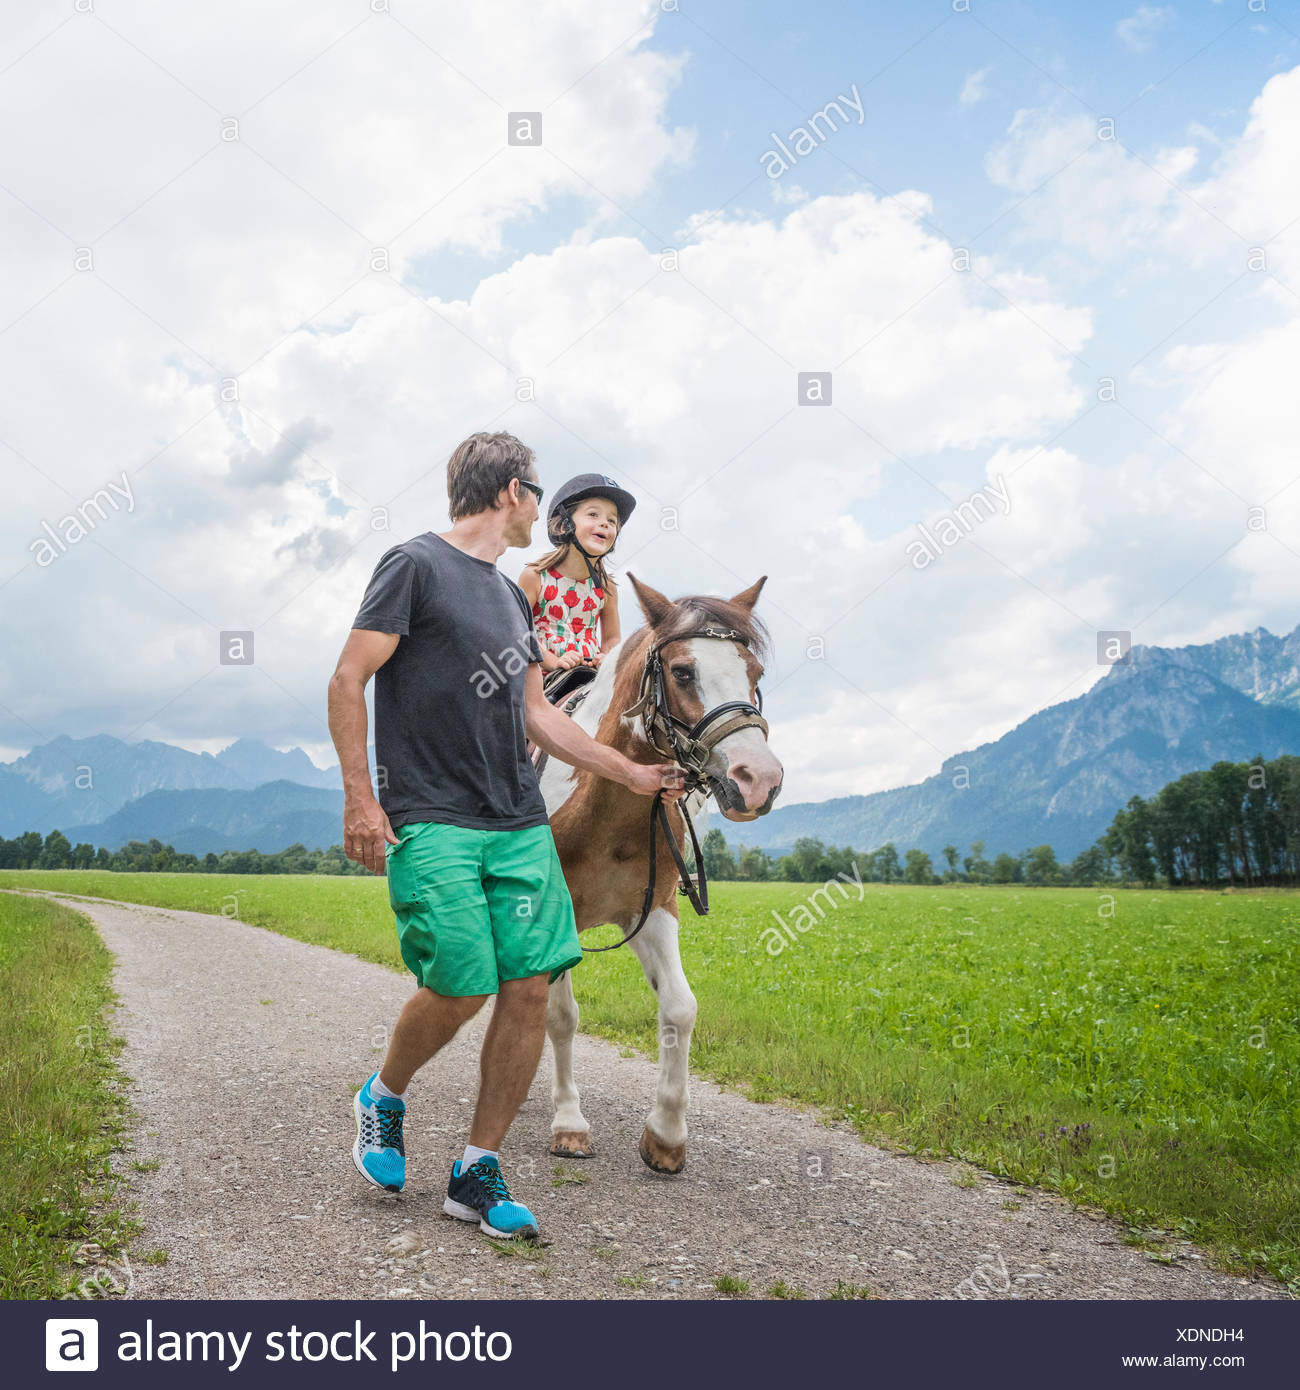 Father guiding daughter riding horse, Fuessen, Bavaria, Germany - Stock Image